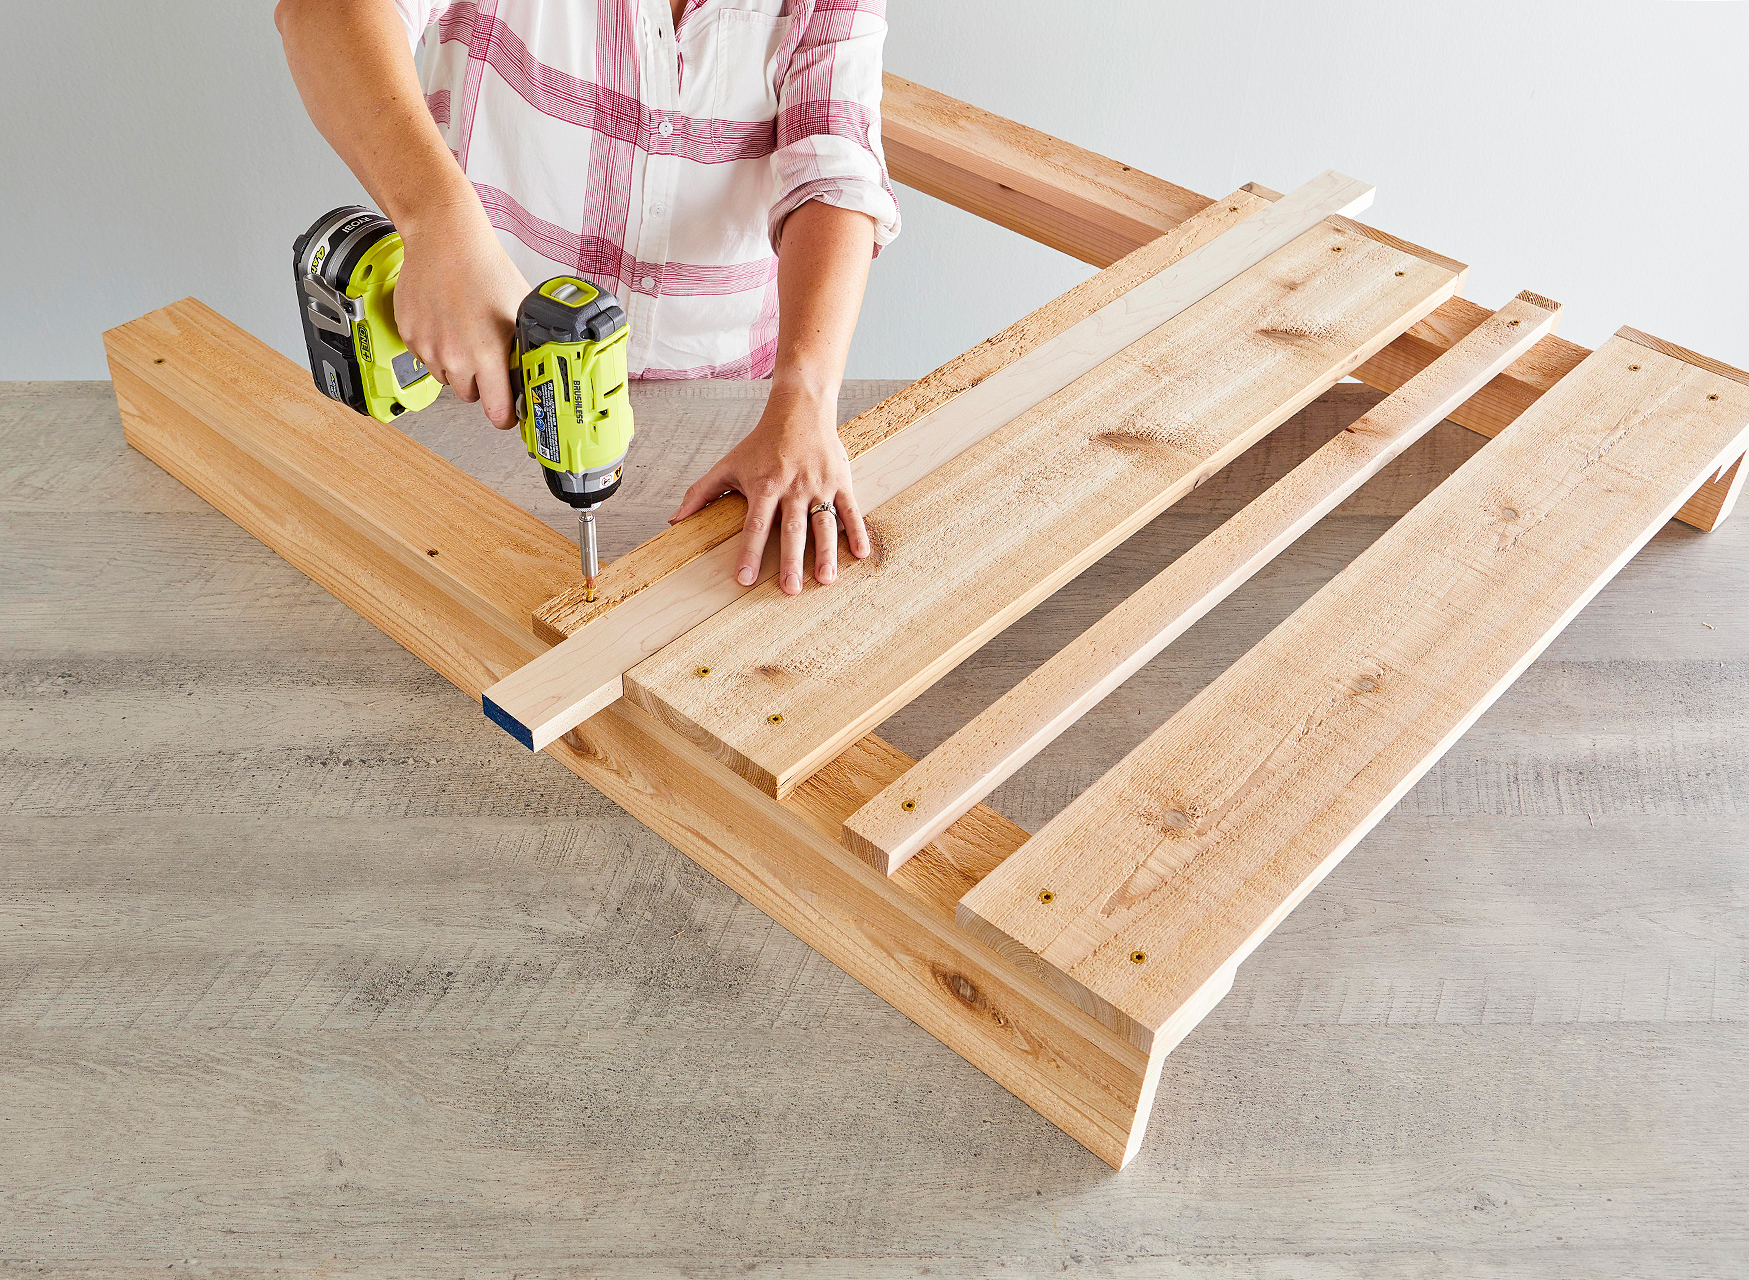 attach planks using spacer for positioning